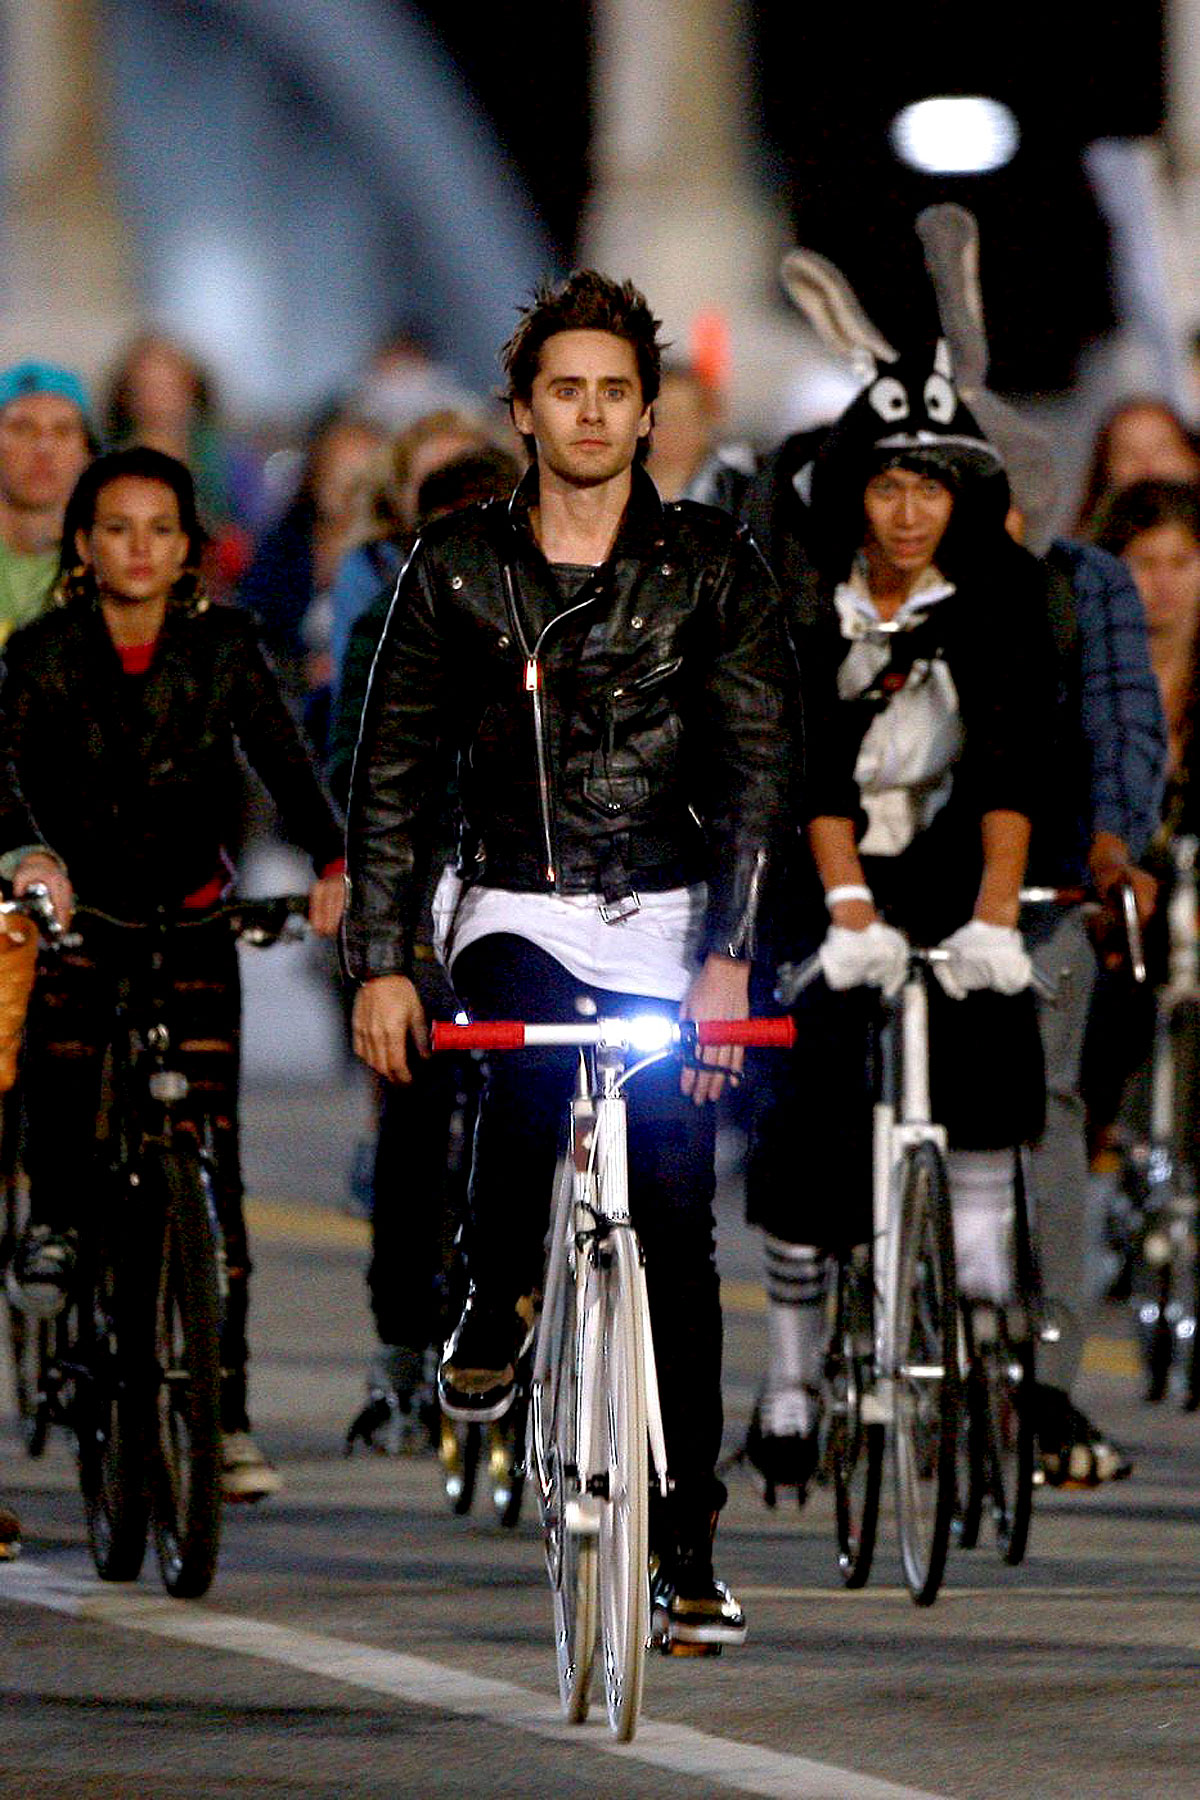 PHOTO GALLERY: Jared Leto Films a Music Video